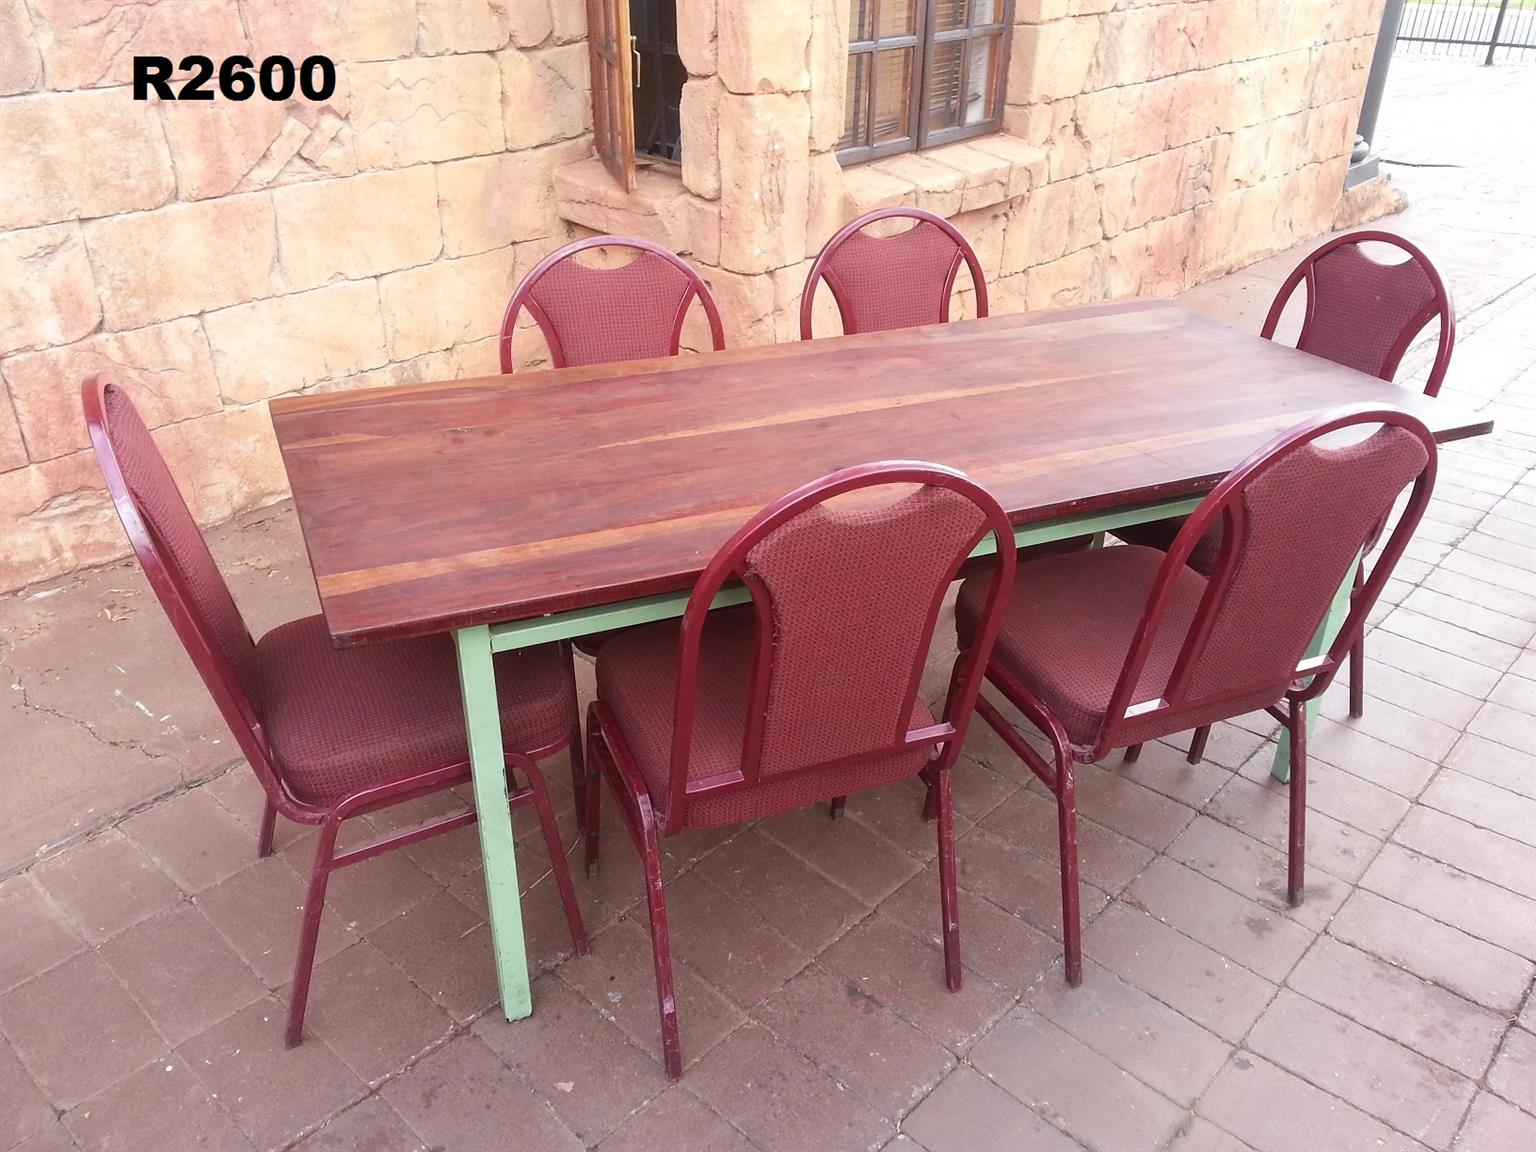 Rhodesian Teak Table with 6 Steel Chairs (1710x820x730)